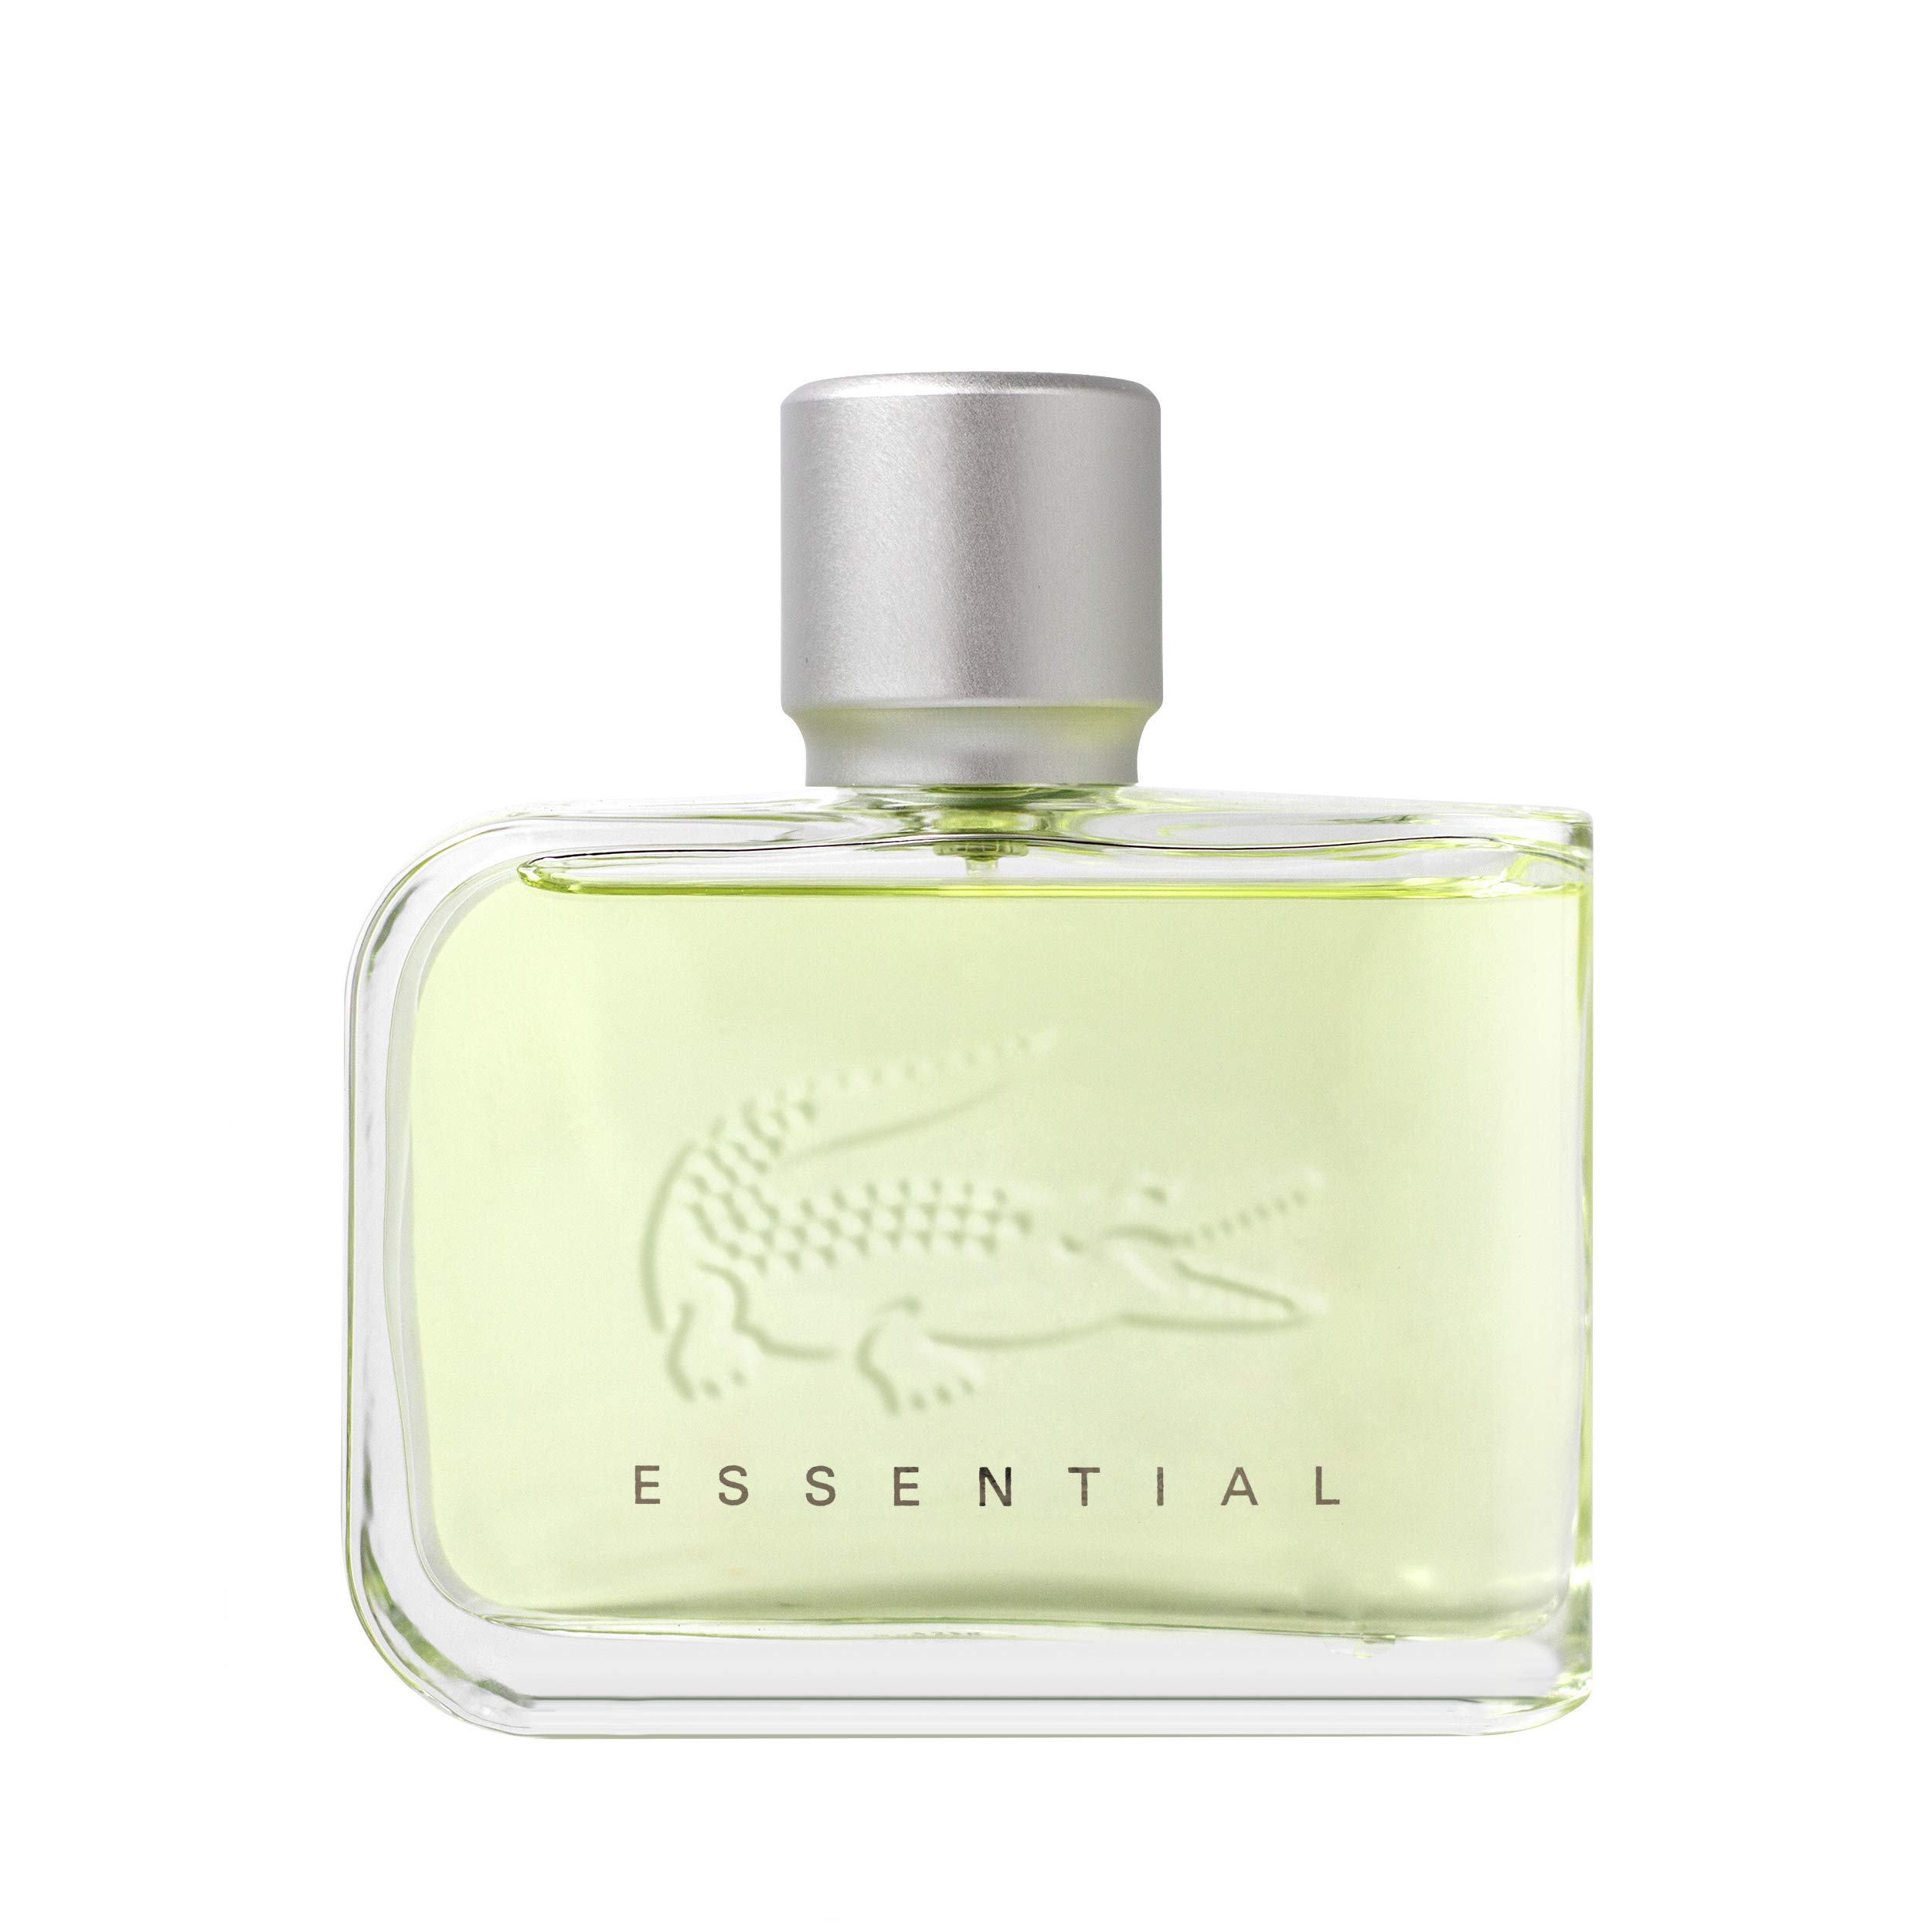 db5f0a0f3e6c Amazon.com  LACOSTE Essential Eau de Toilette  Lacoste Essential  Luxury  Beauty